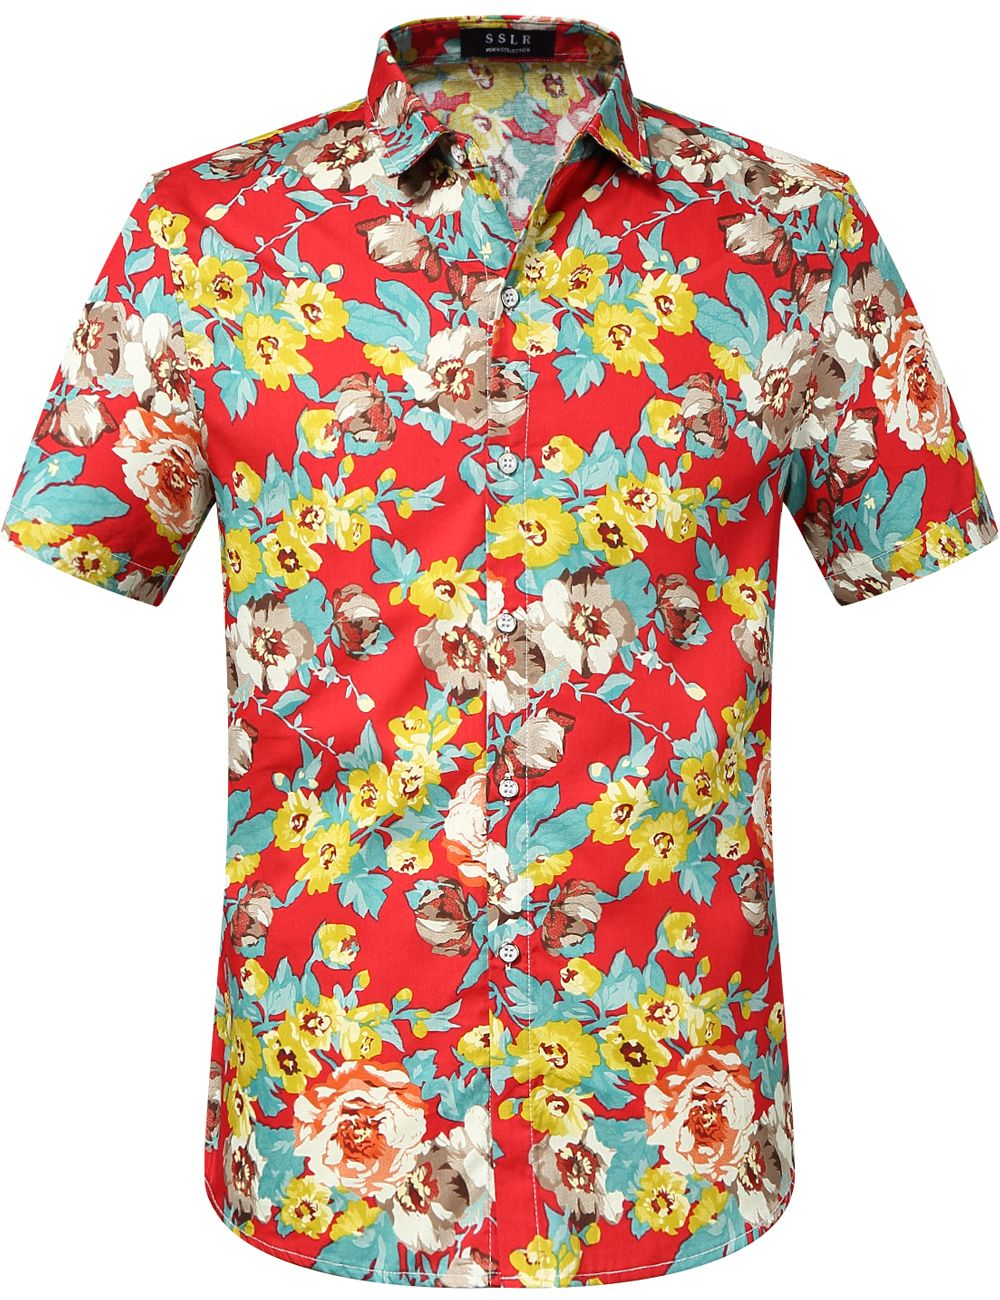 fa896c5e $22.00 Blast Red Floral Print Hawaiian Shirts #Hawaiian shirt#menswear